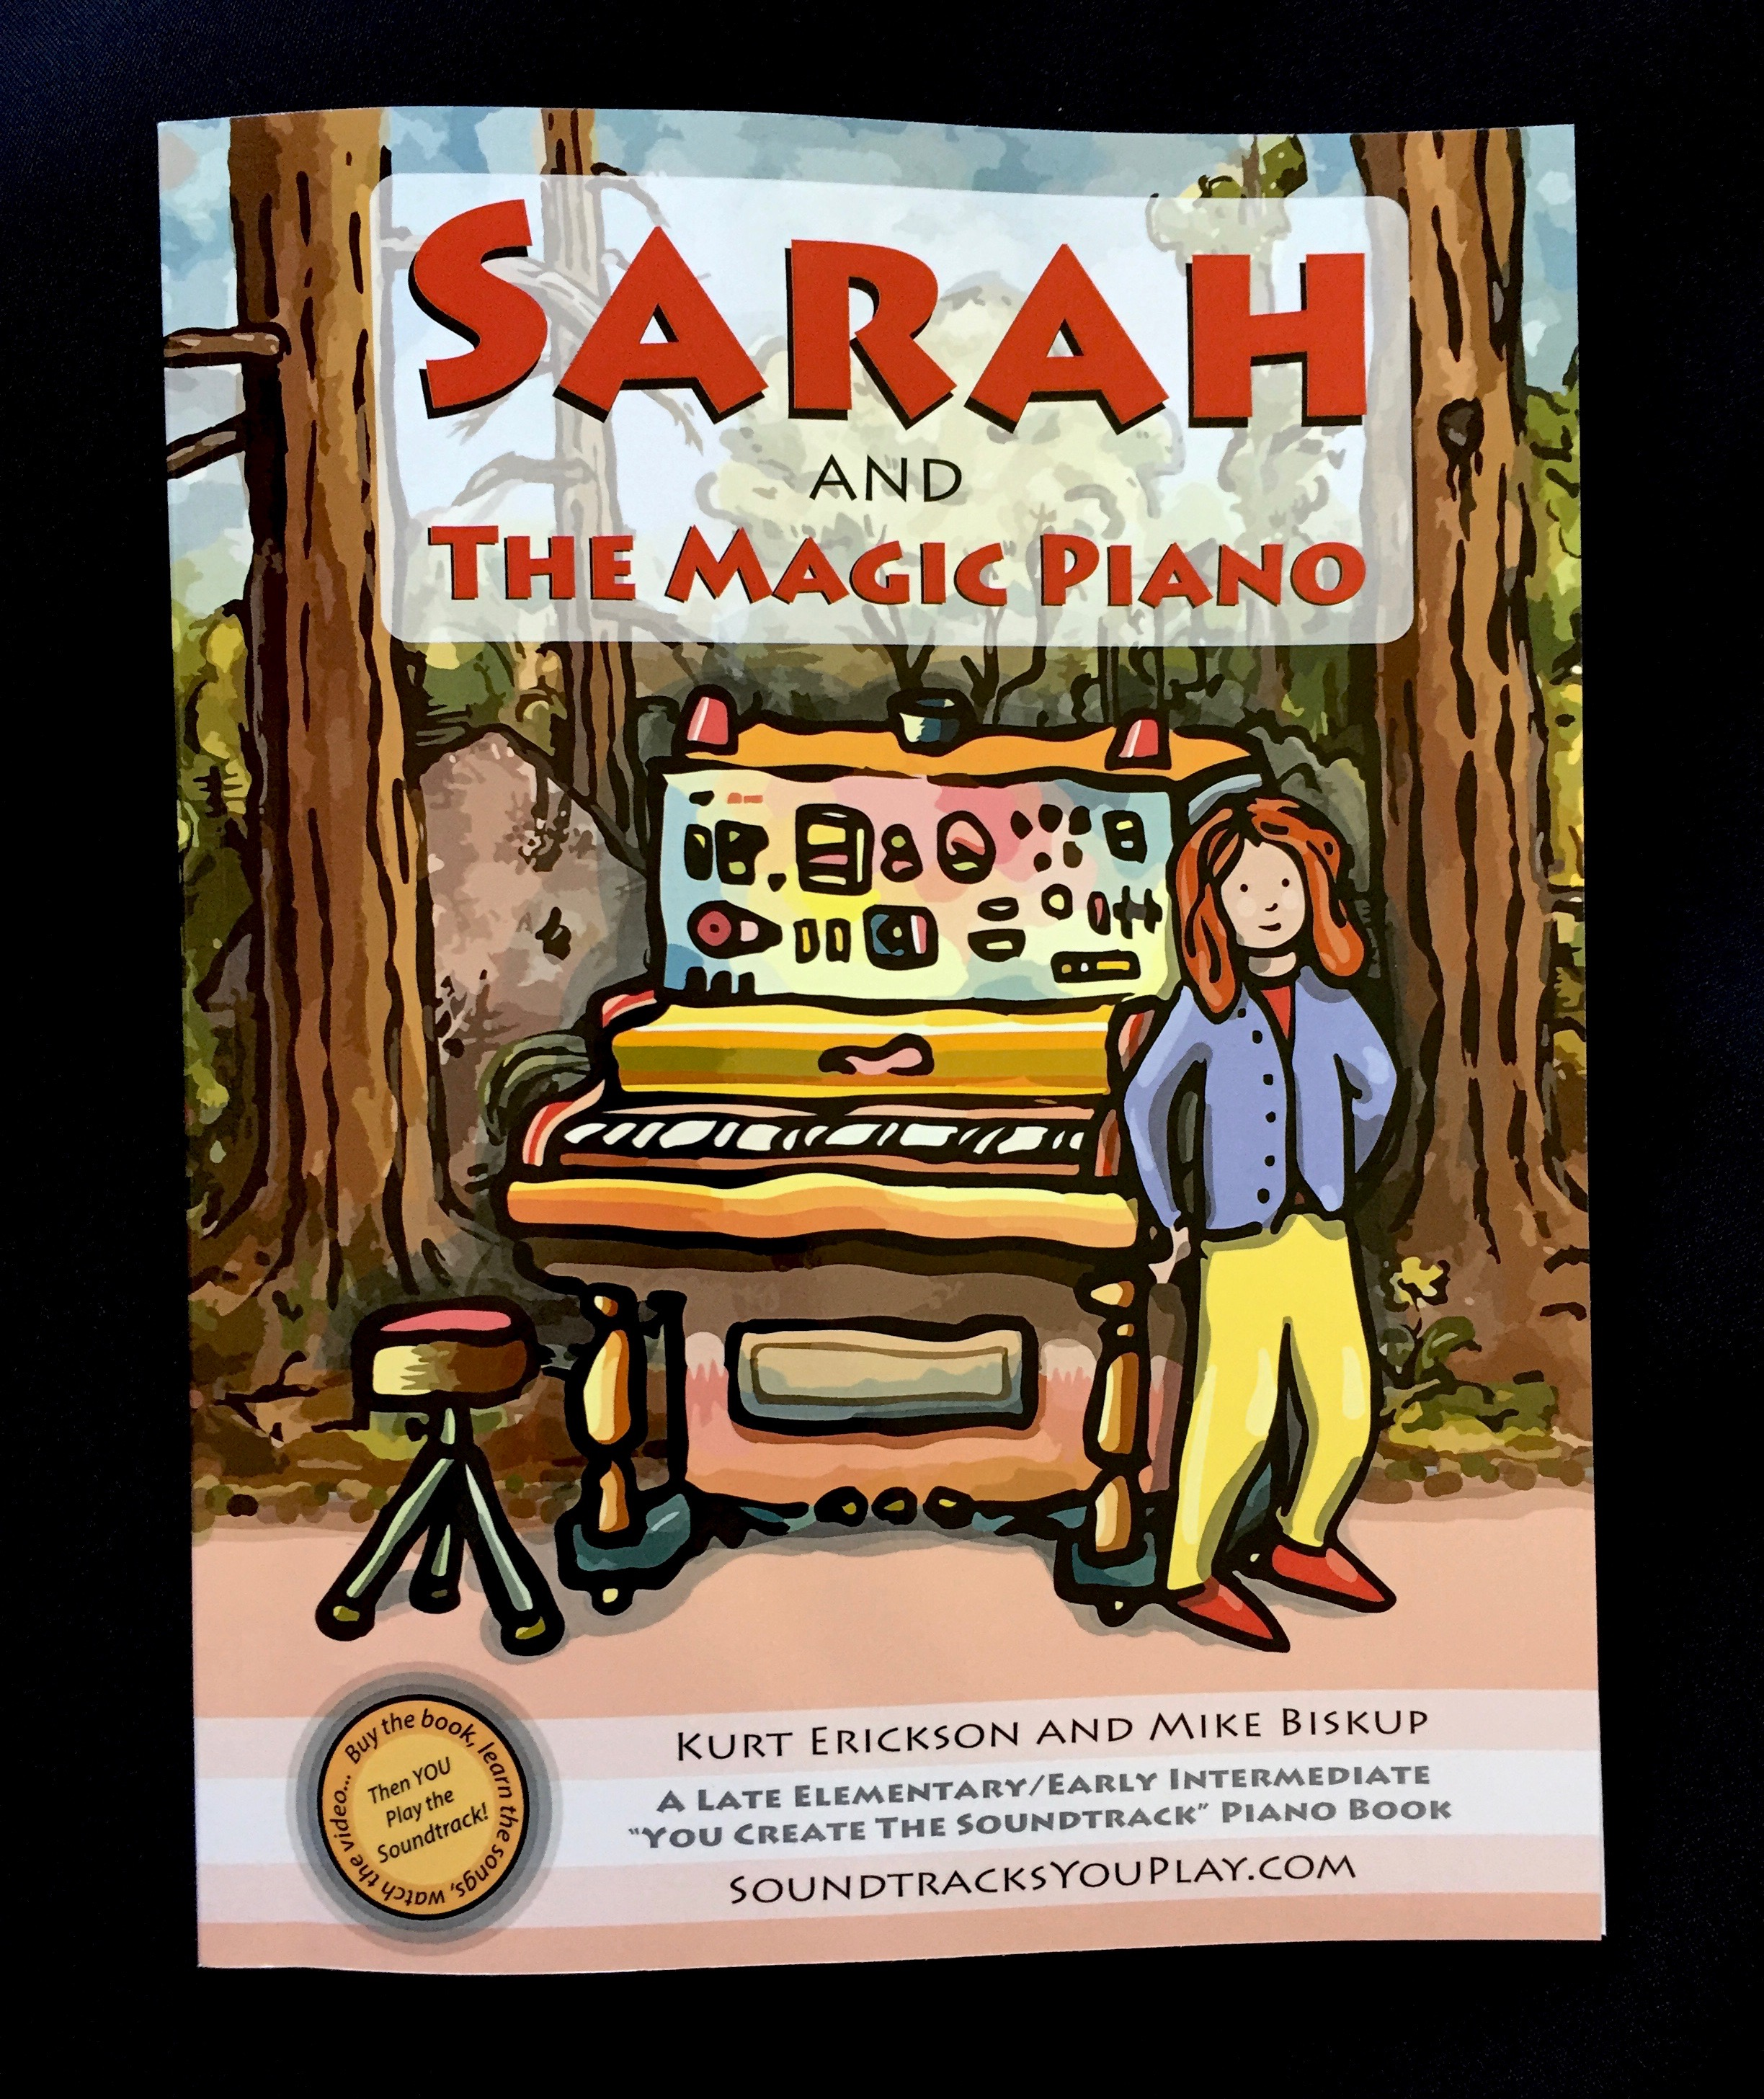 The first book in a series of super creative musical expeditions to help keep young music learners engaged, inspired, and entertained all at once.